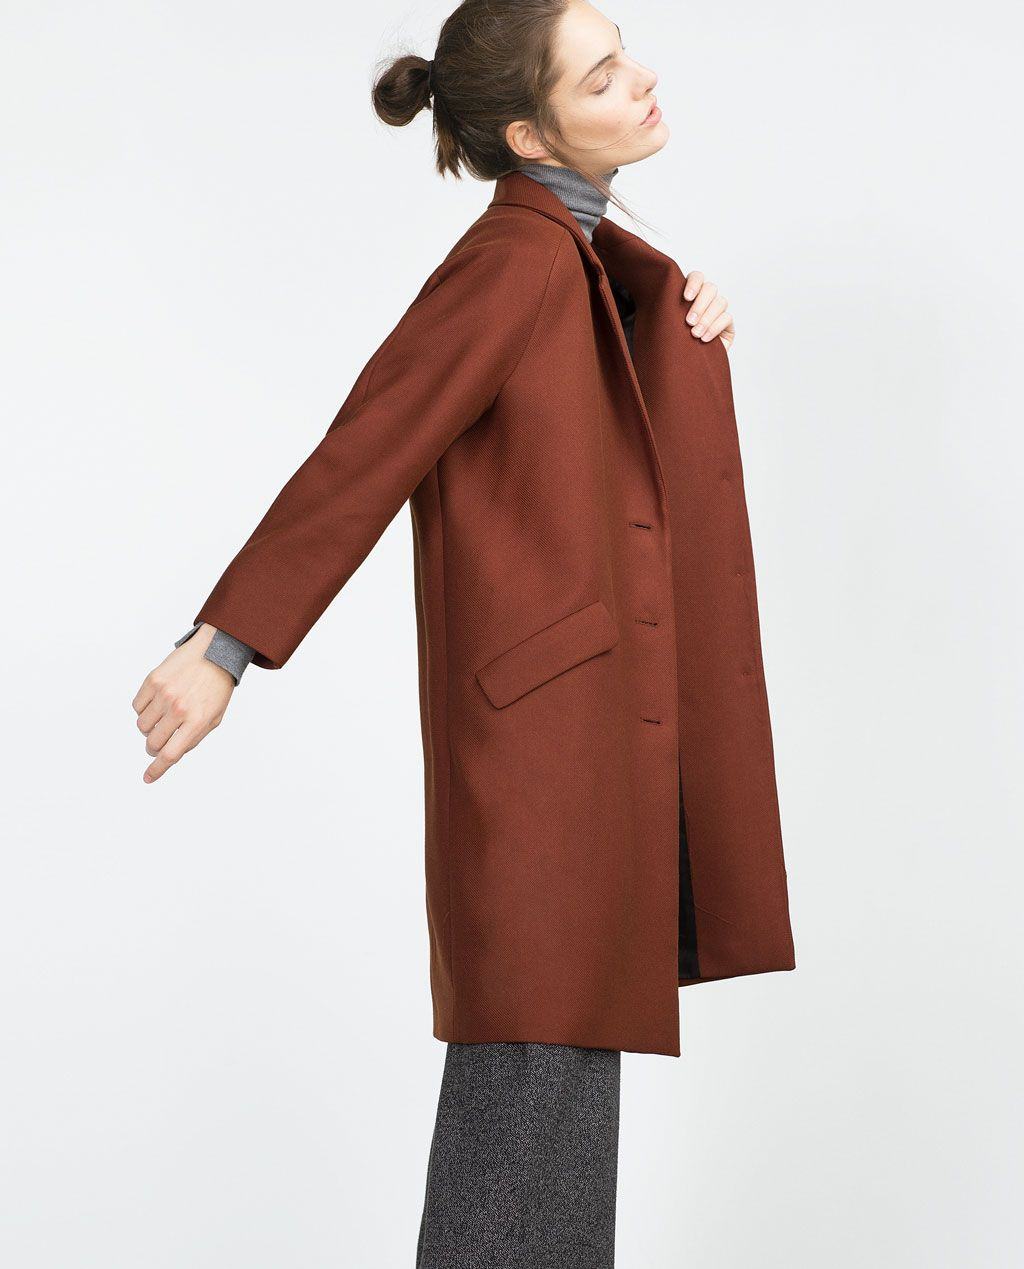 COAT WITH POCKETS-Coats-WOMAN | ZARA United States · Winter ...